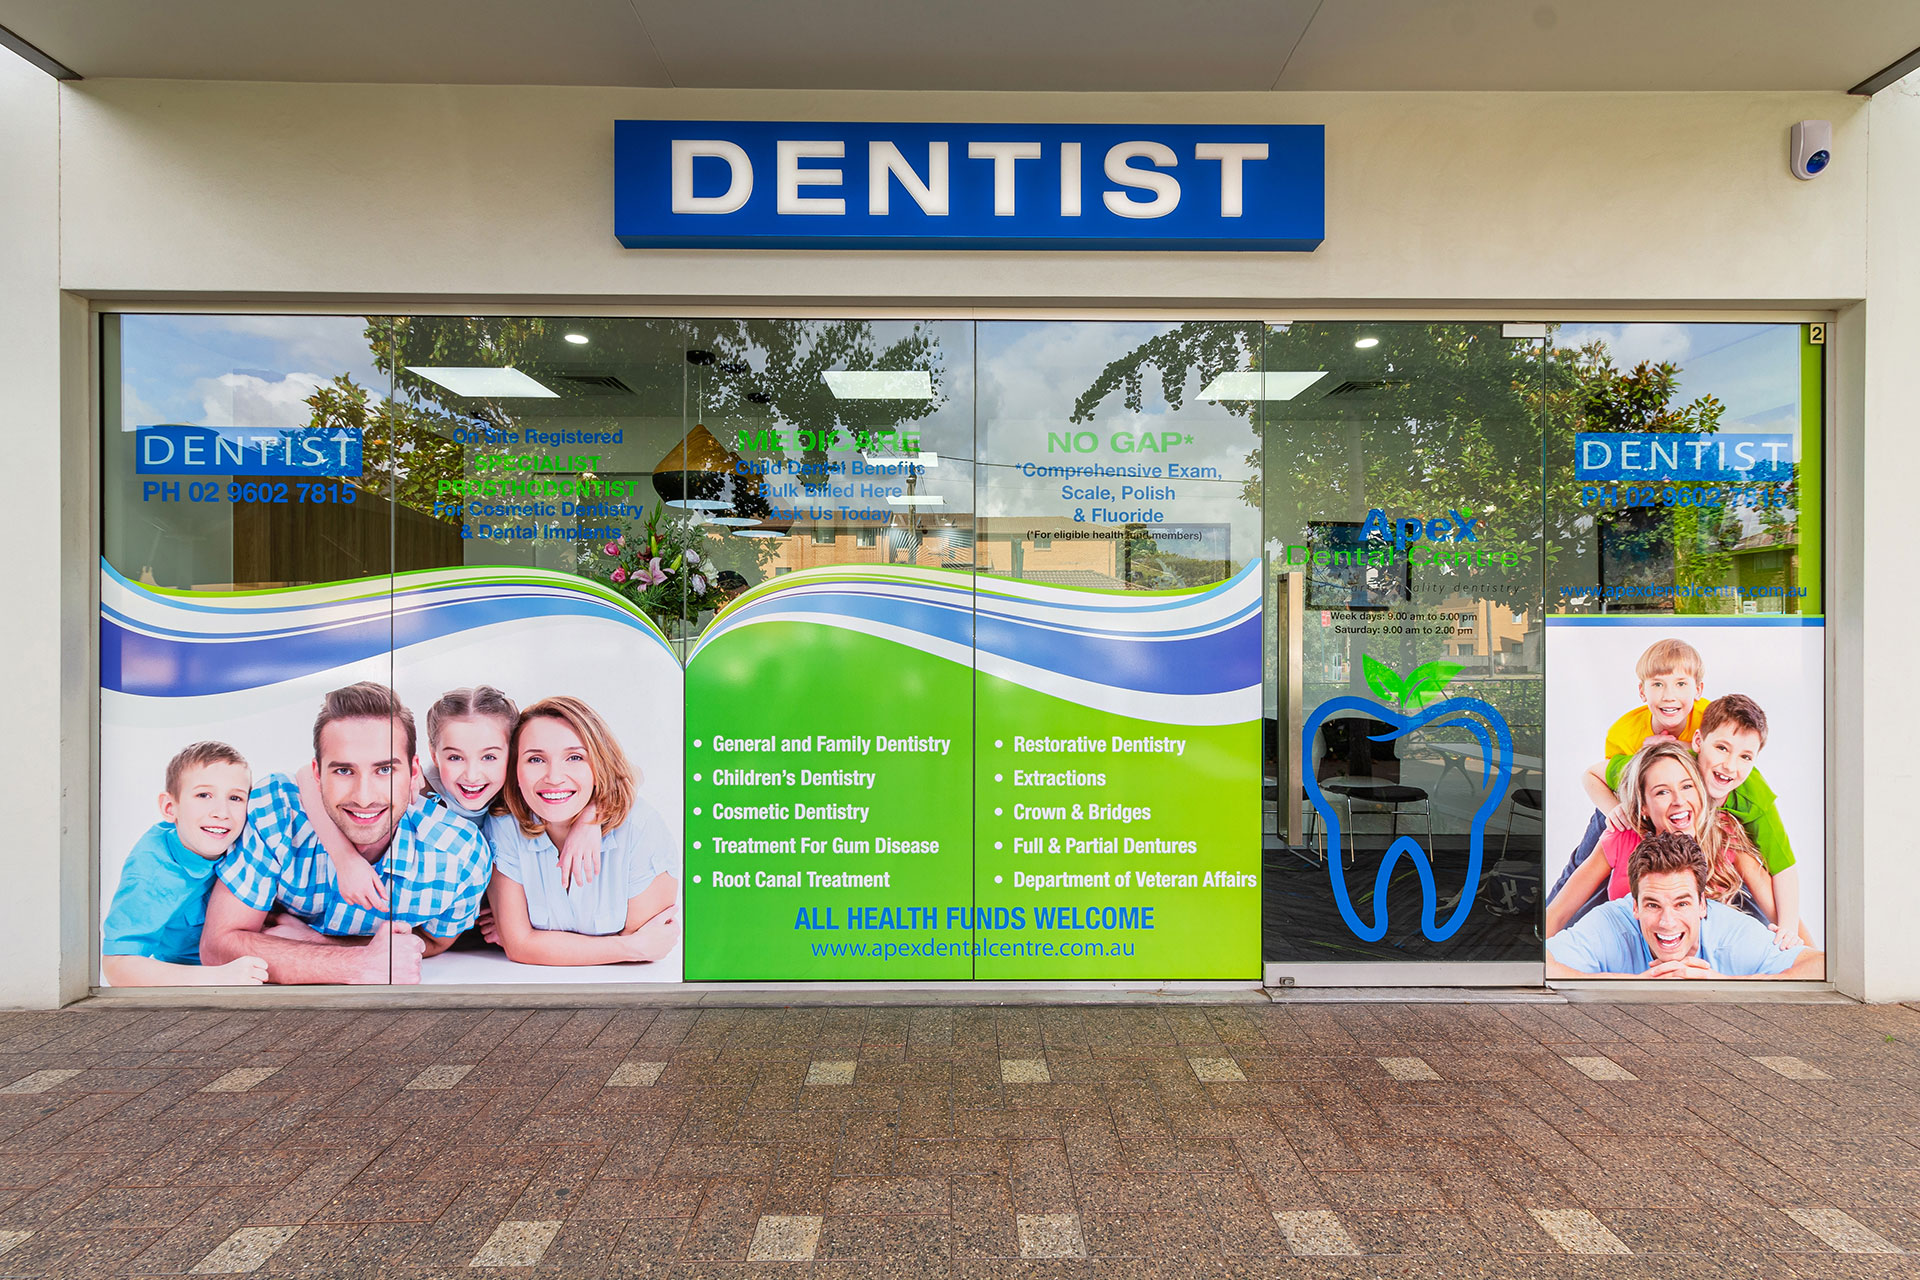 Dentist in liverpool